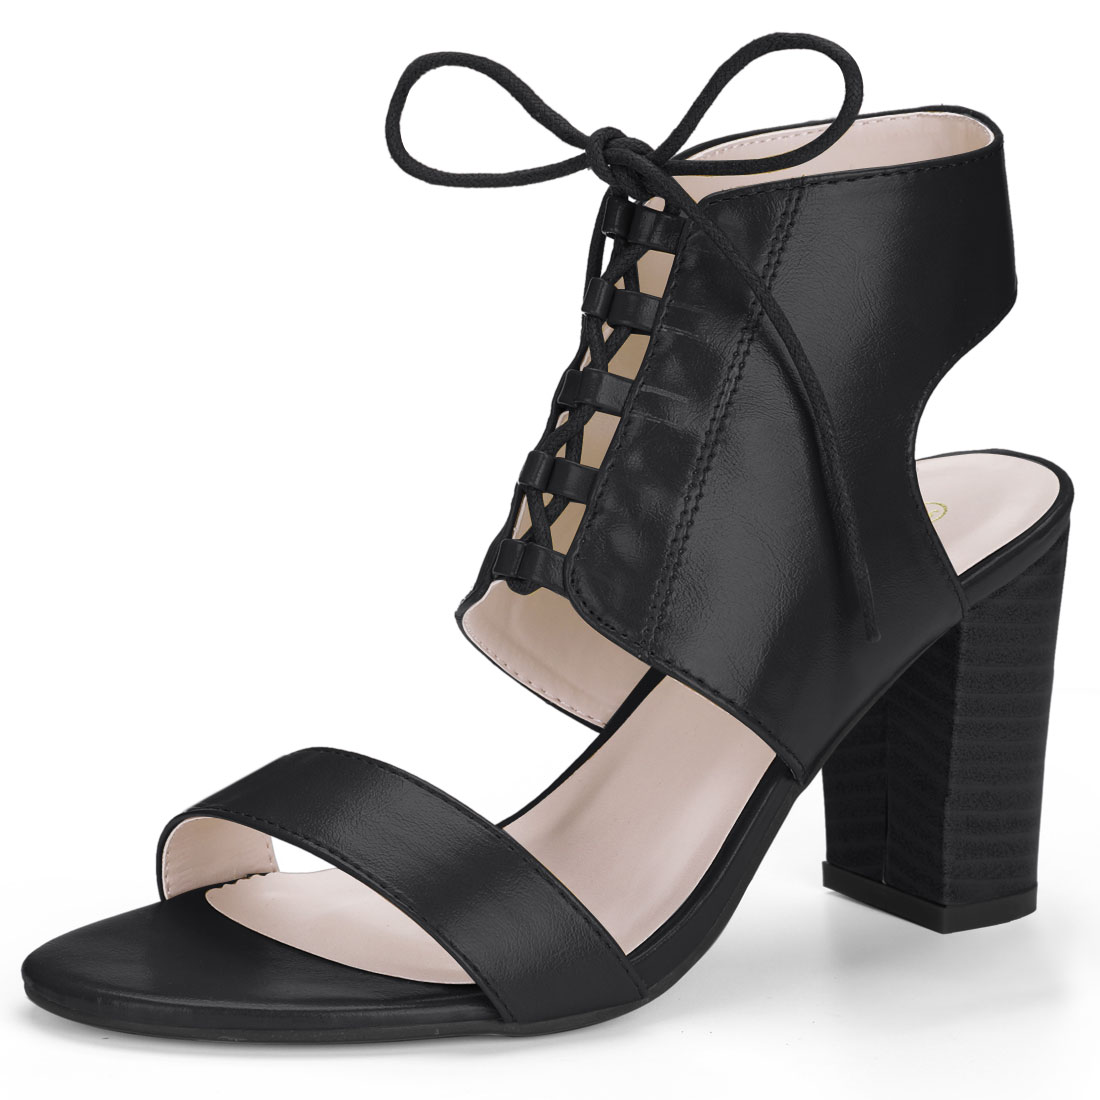 Women Stacked High Heel Open Toe Lace Up Sandals Black US 7.5